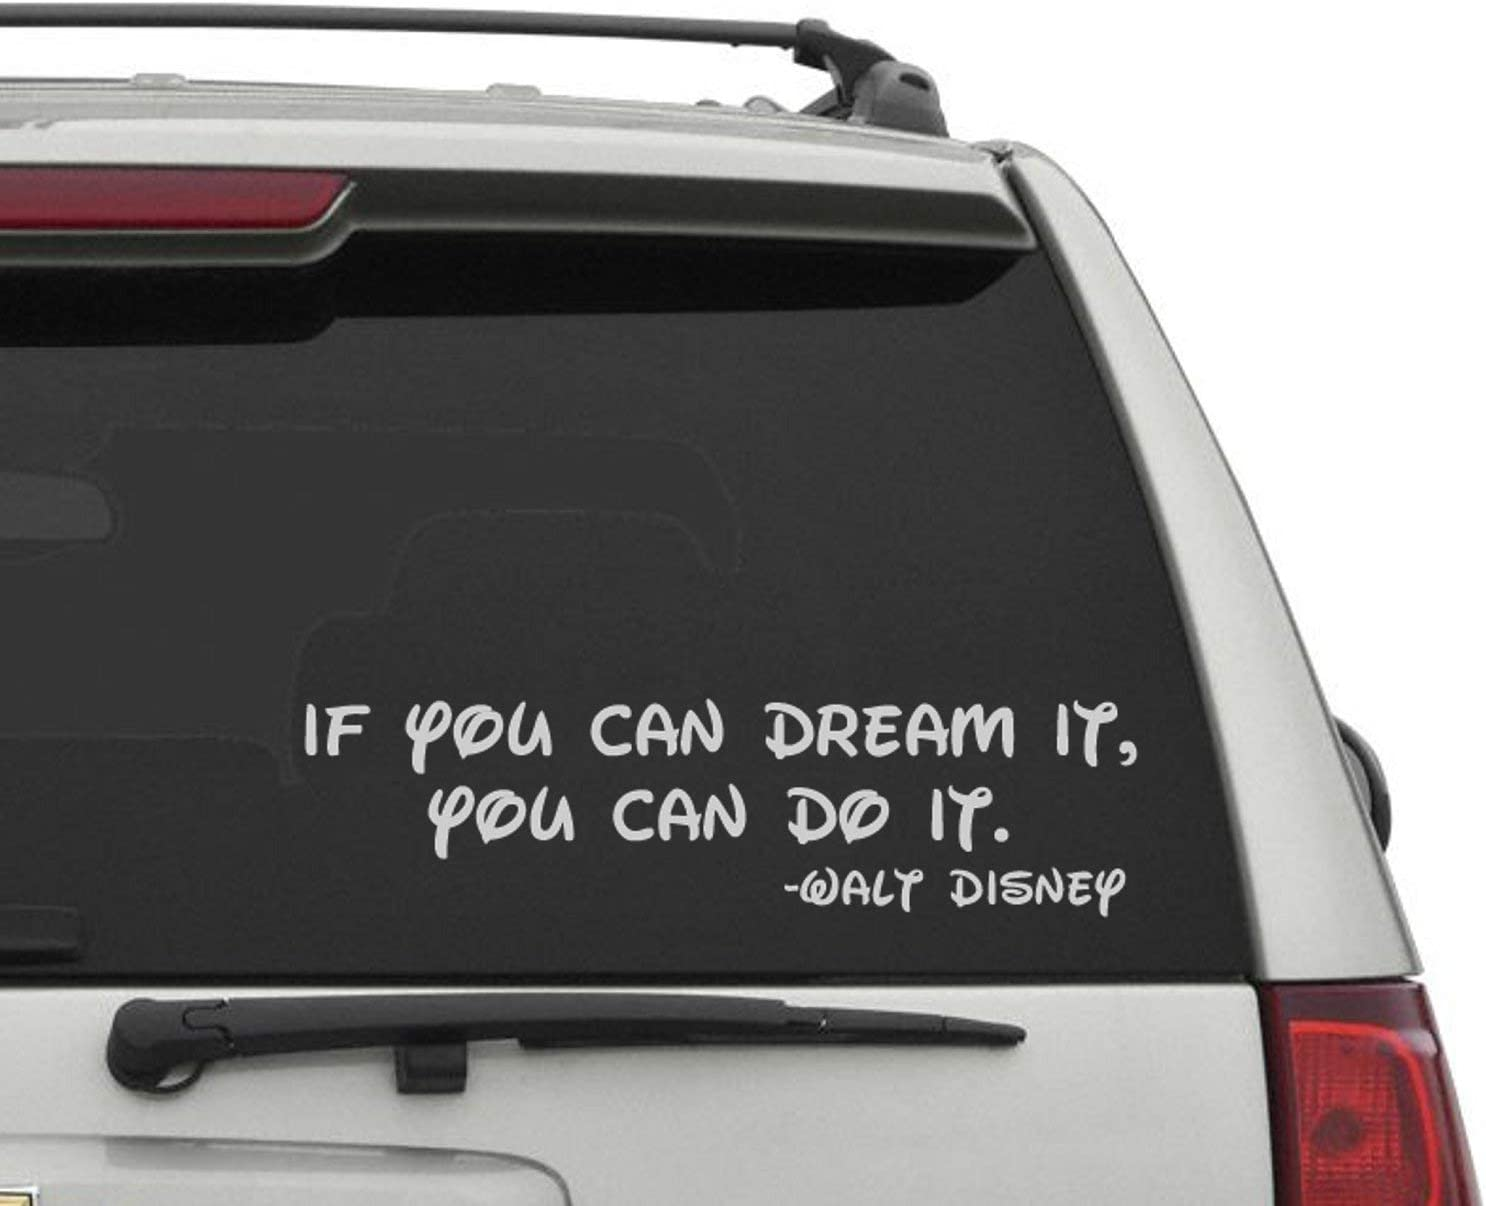 Walt Disney Car Decal - Disney Car Decal - Walt Disney Quote Decal - Disney Decor - If You Can Dream It You Can Do It - Walt Disney Sticker